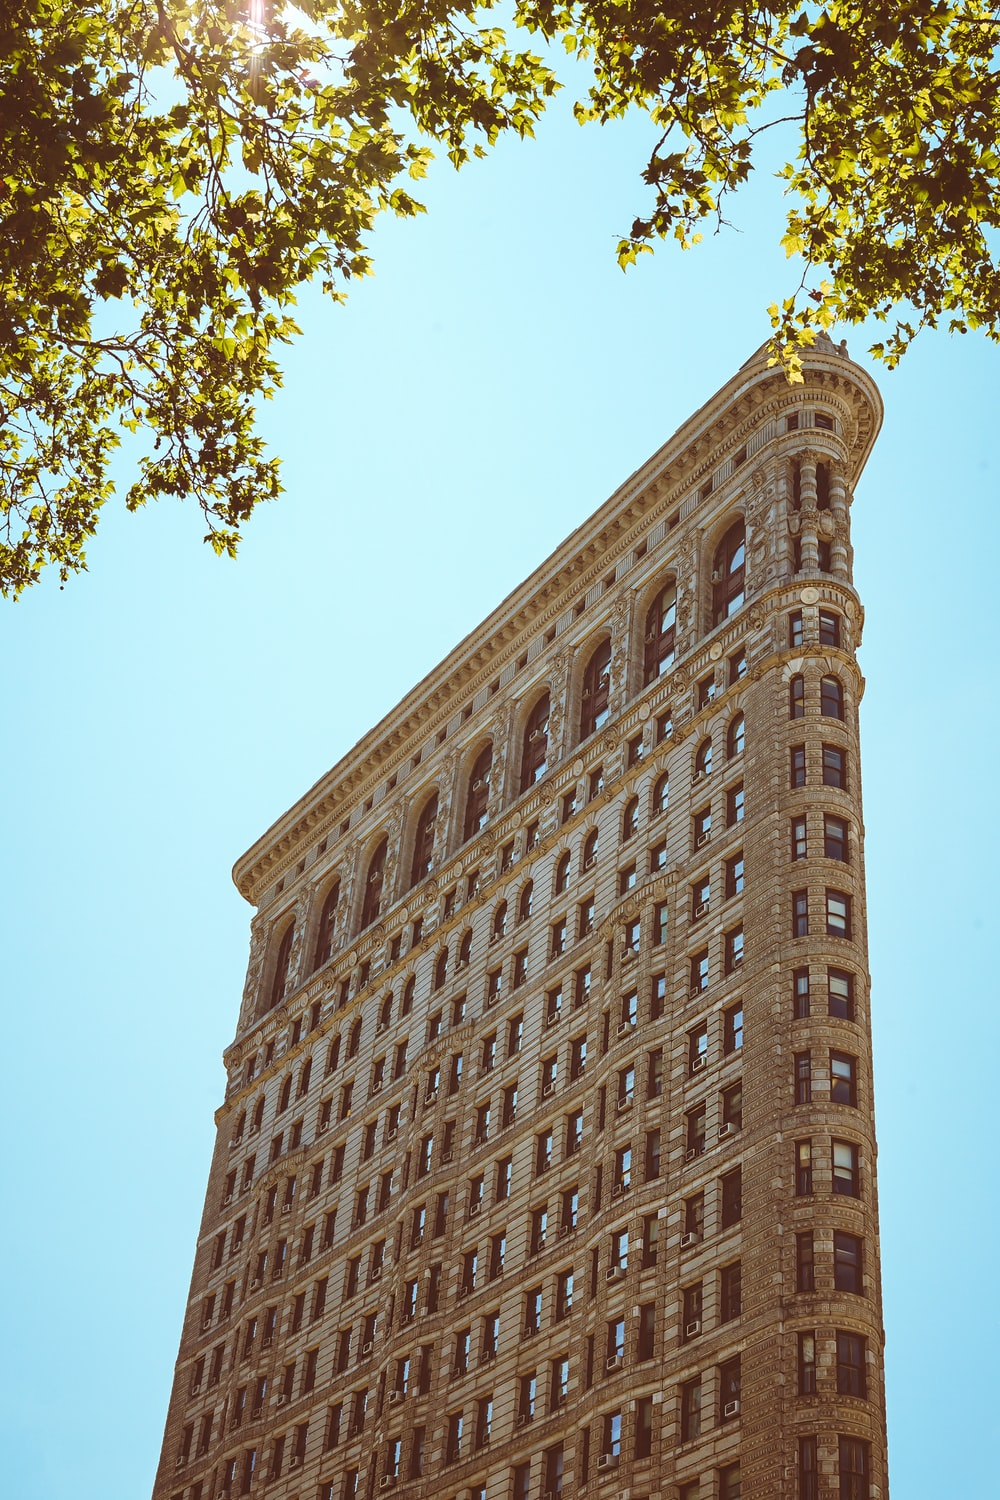 Flatiron Building, New York during daytime